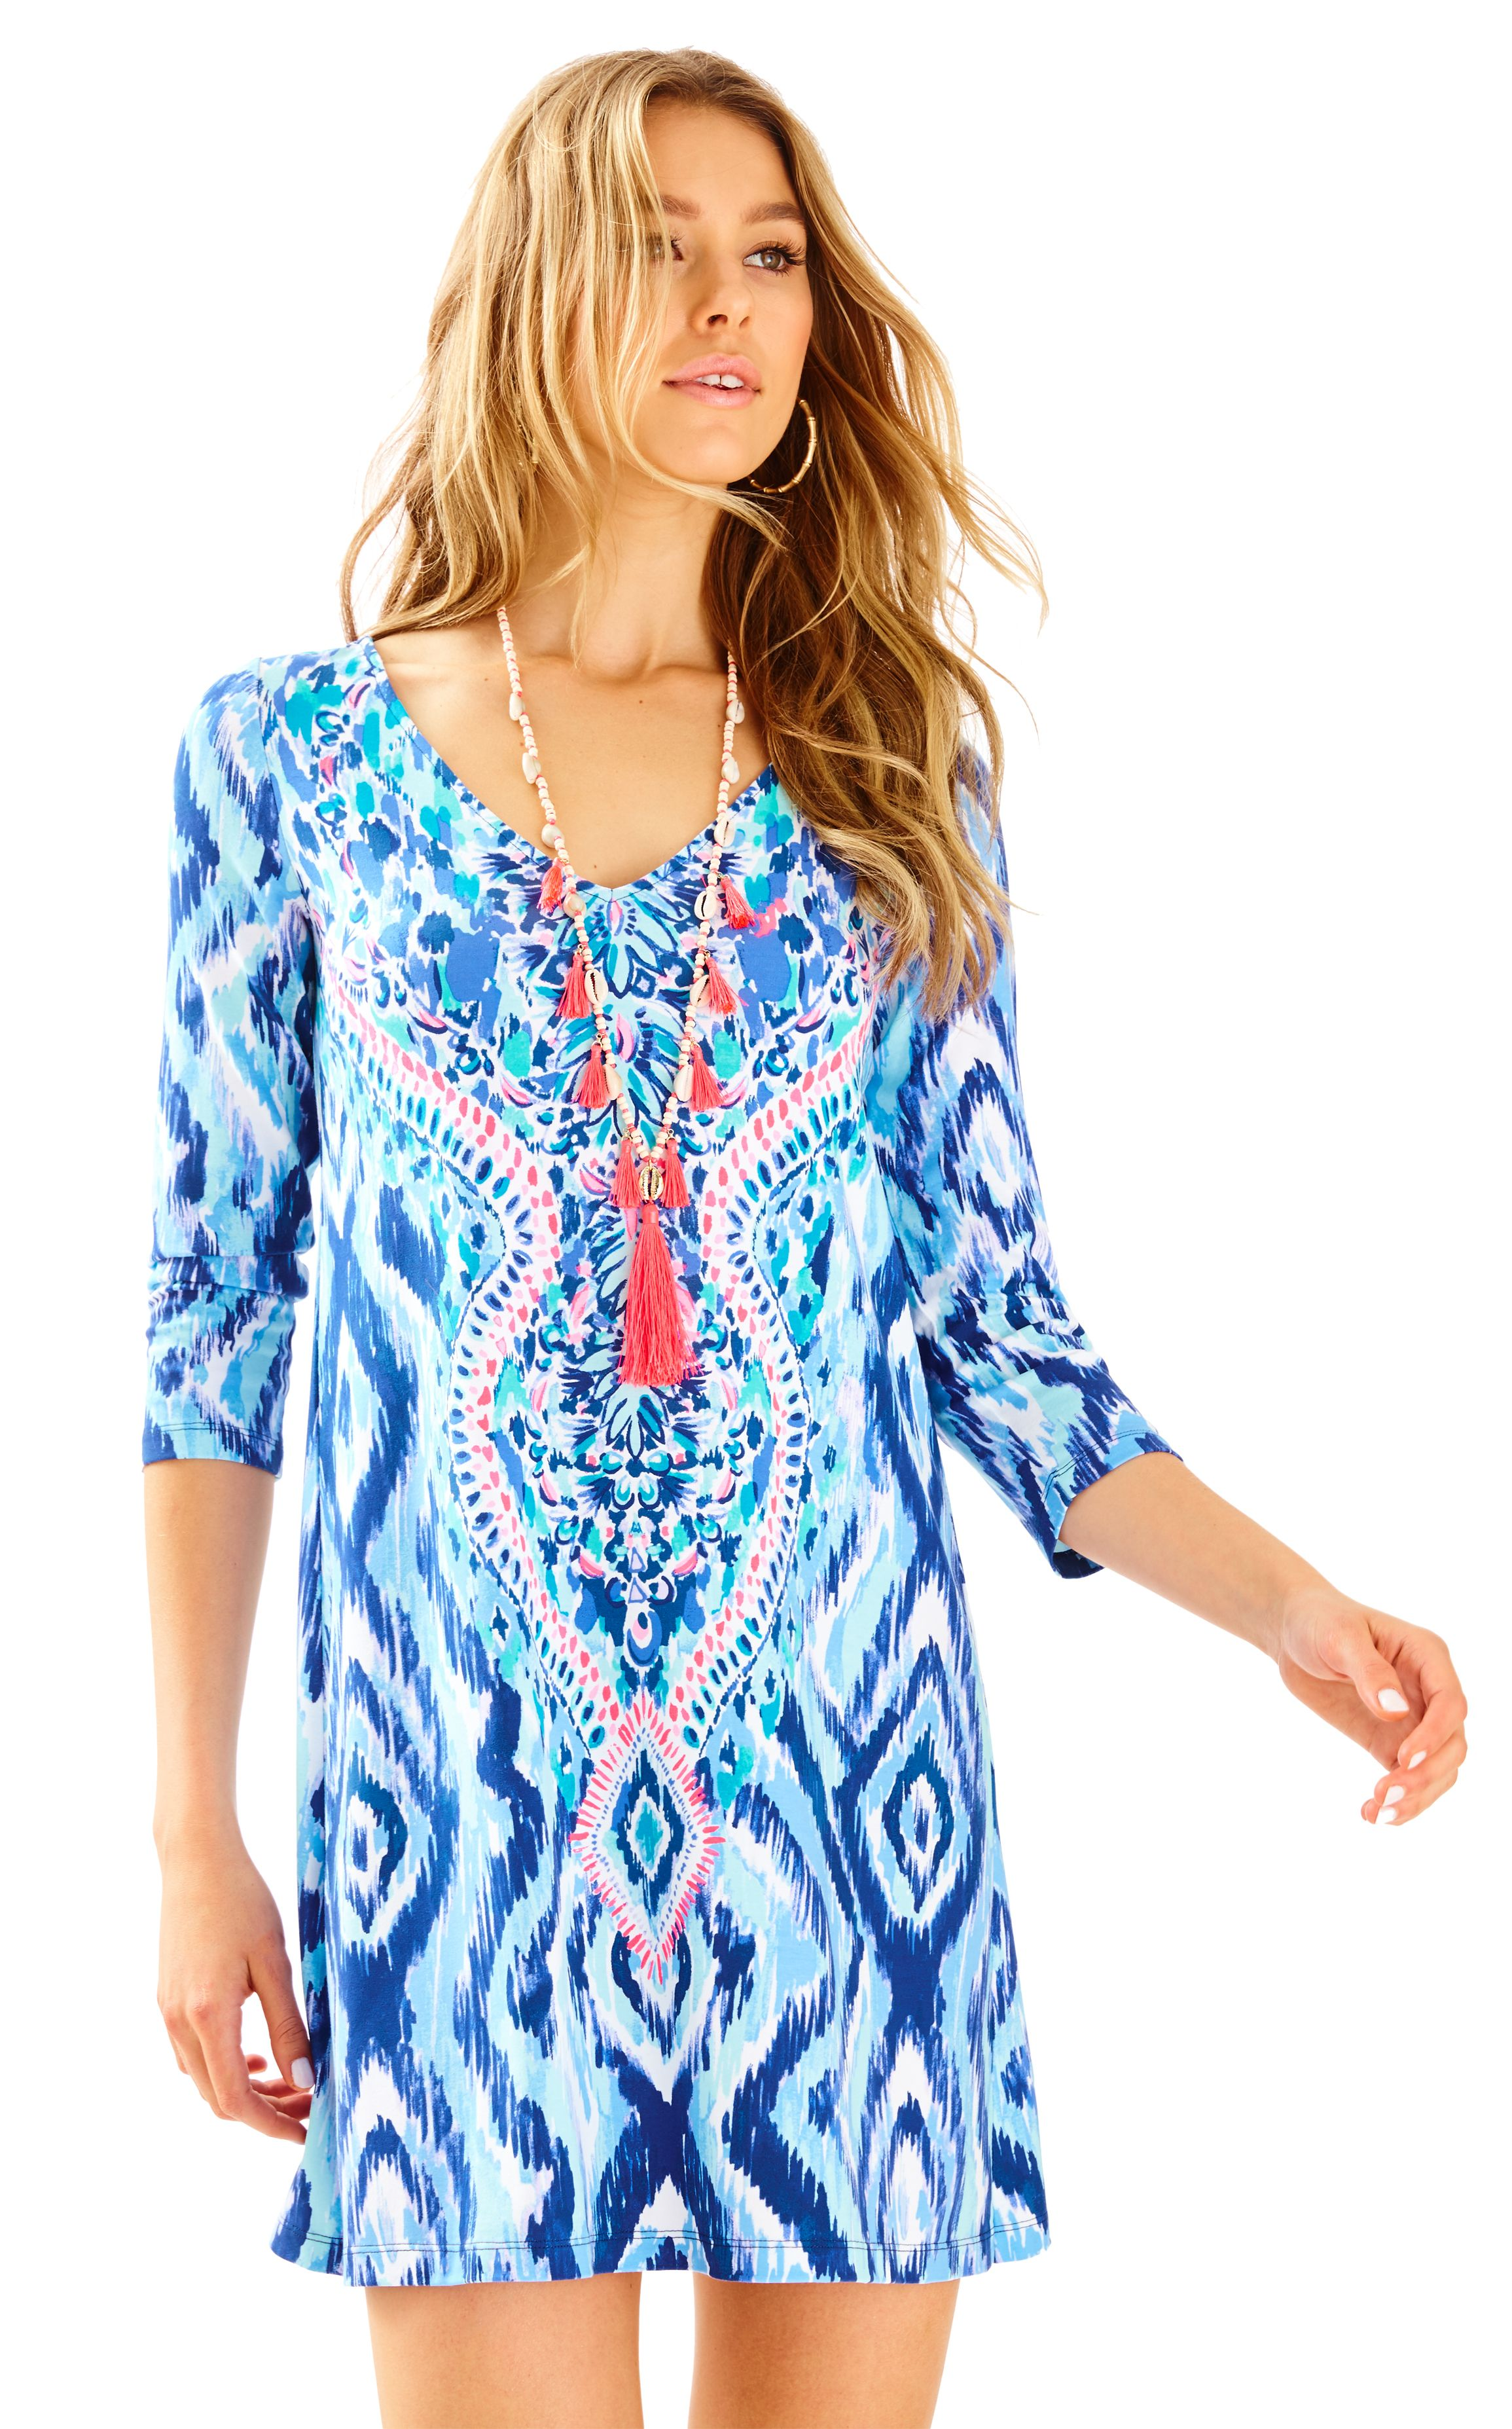 When Is the Lilly Pulitzer Sale - How to Shop the Lilly Pulitzer ...